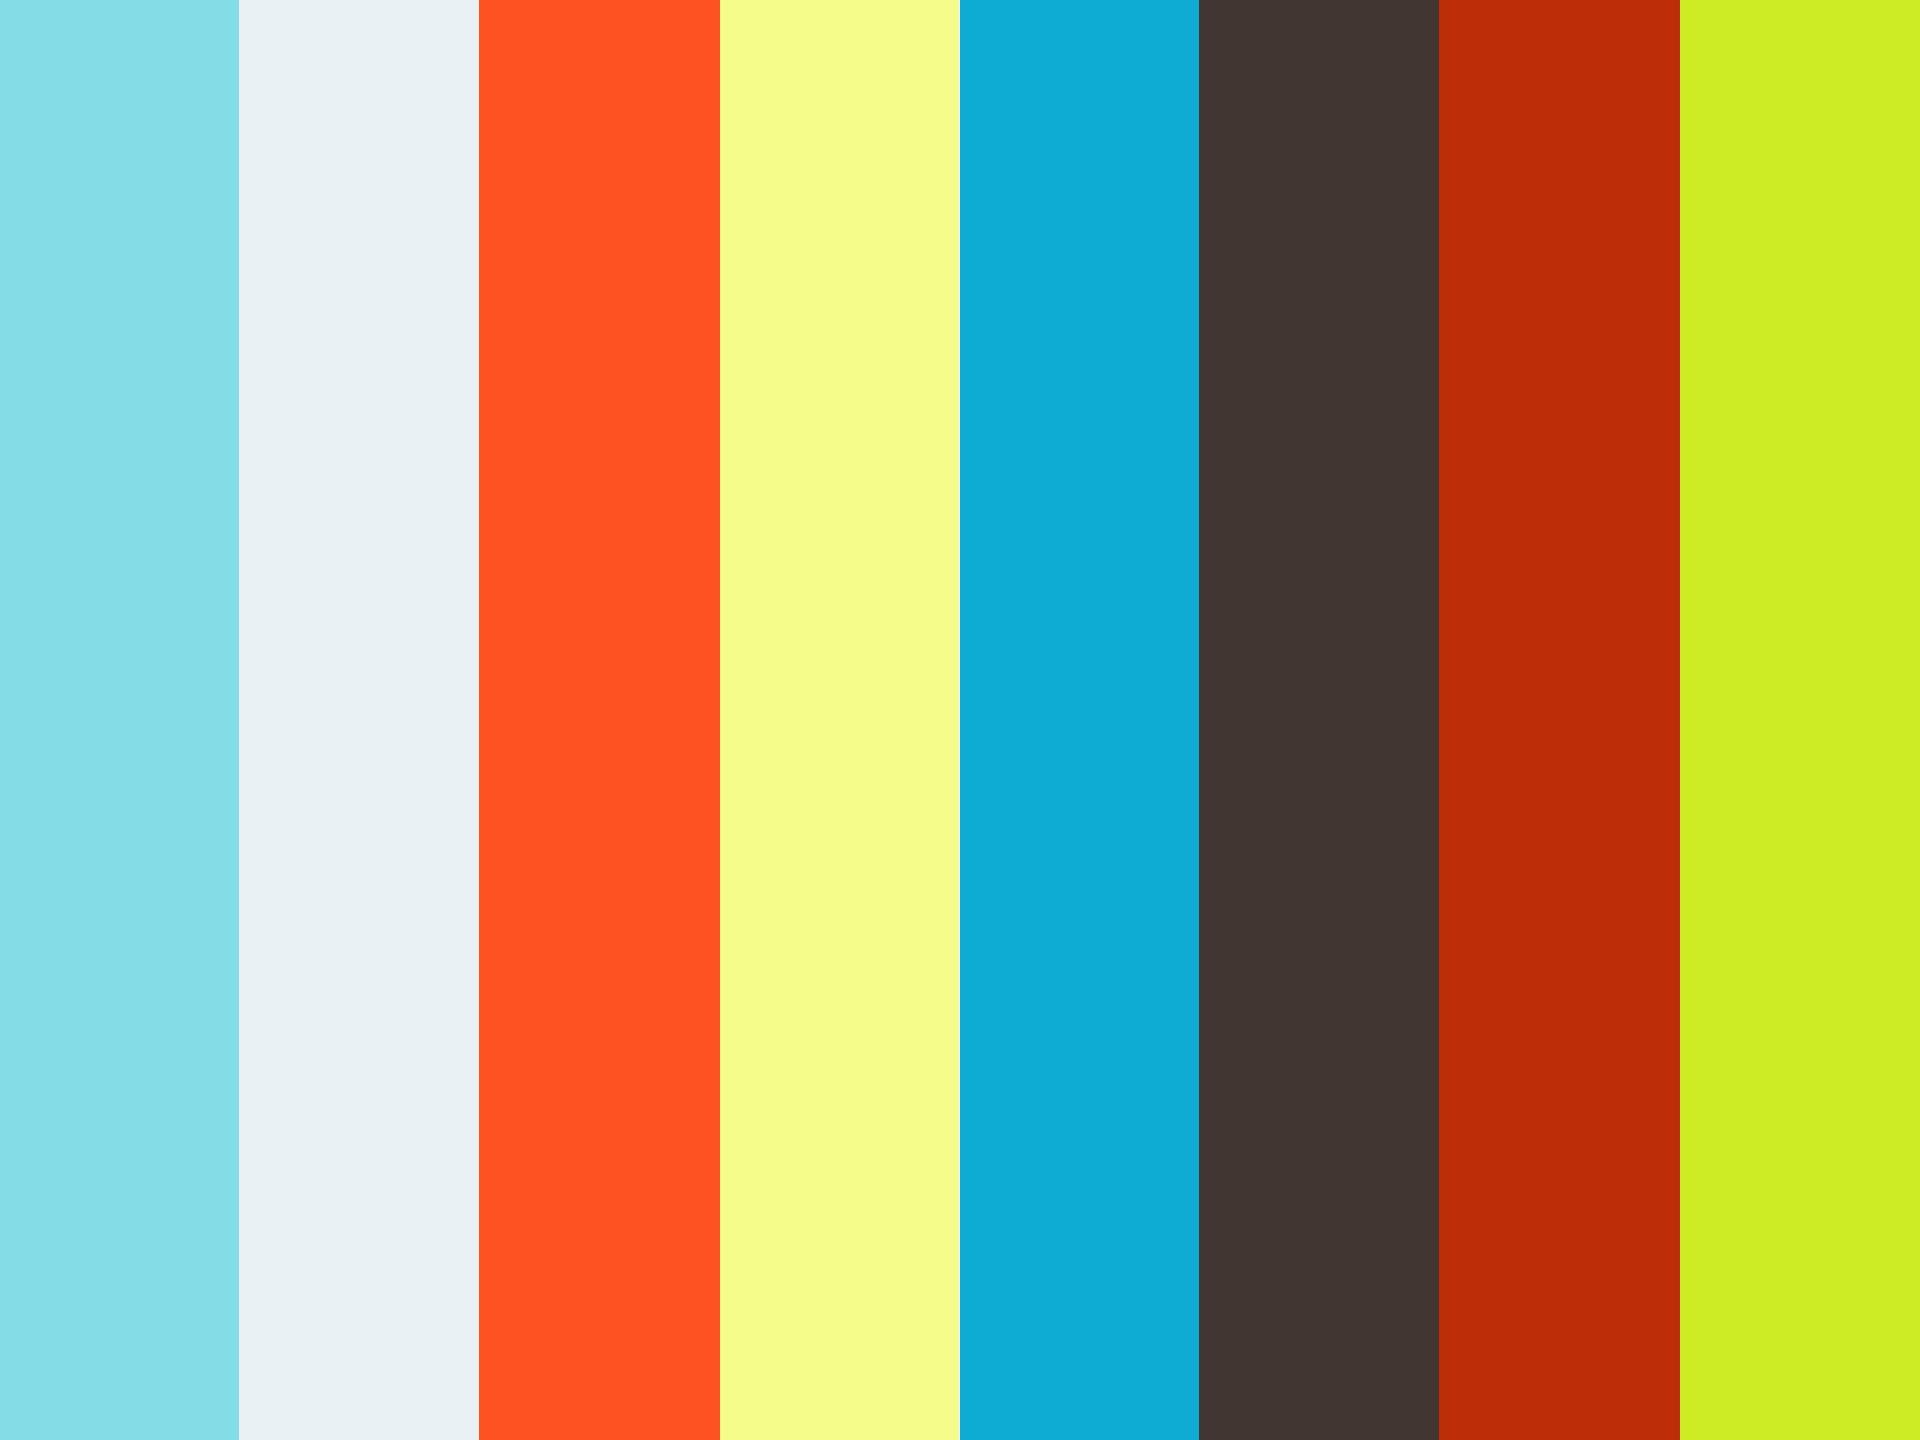 Ureteral Injuries in Colorectal Surgery: An Analysis of Trends, Outcomes and Risk Factors over a 10-Year Period in the United States 2013